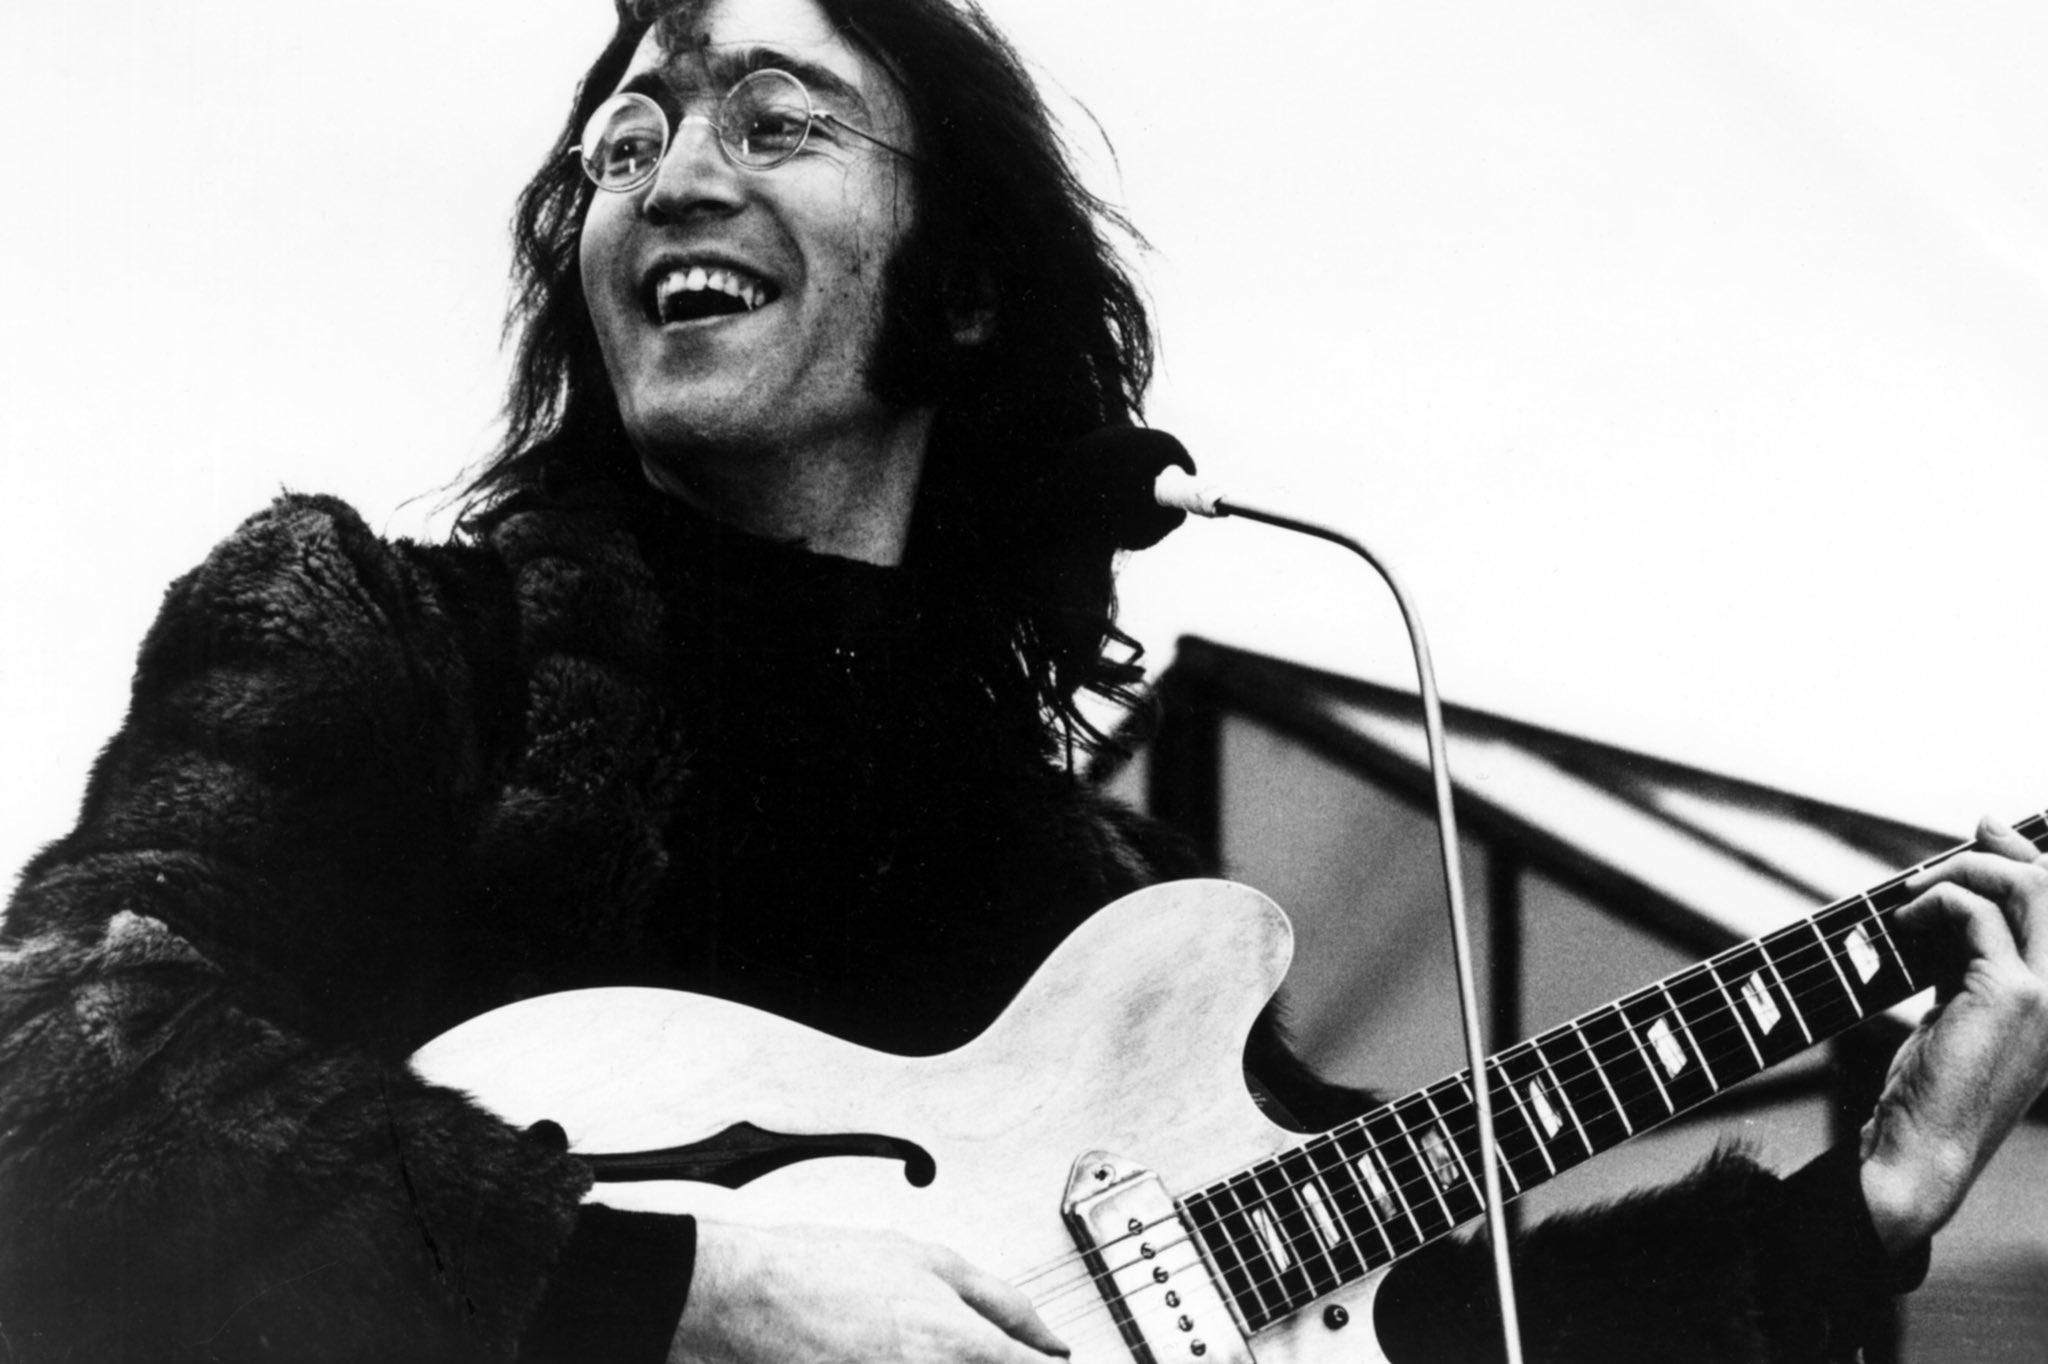 Happy birthday, John Lennon. We are still imagining